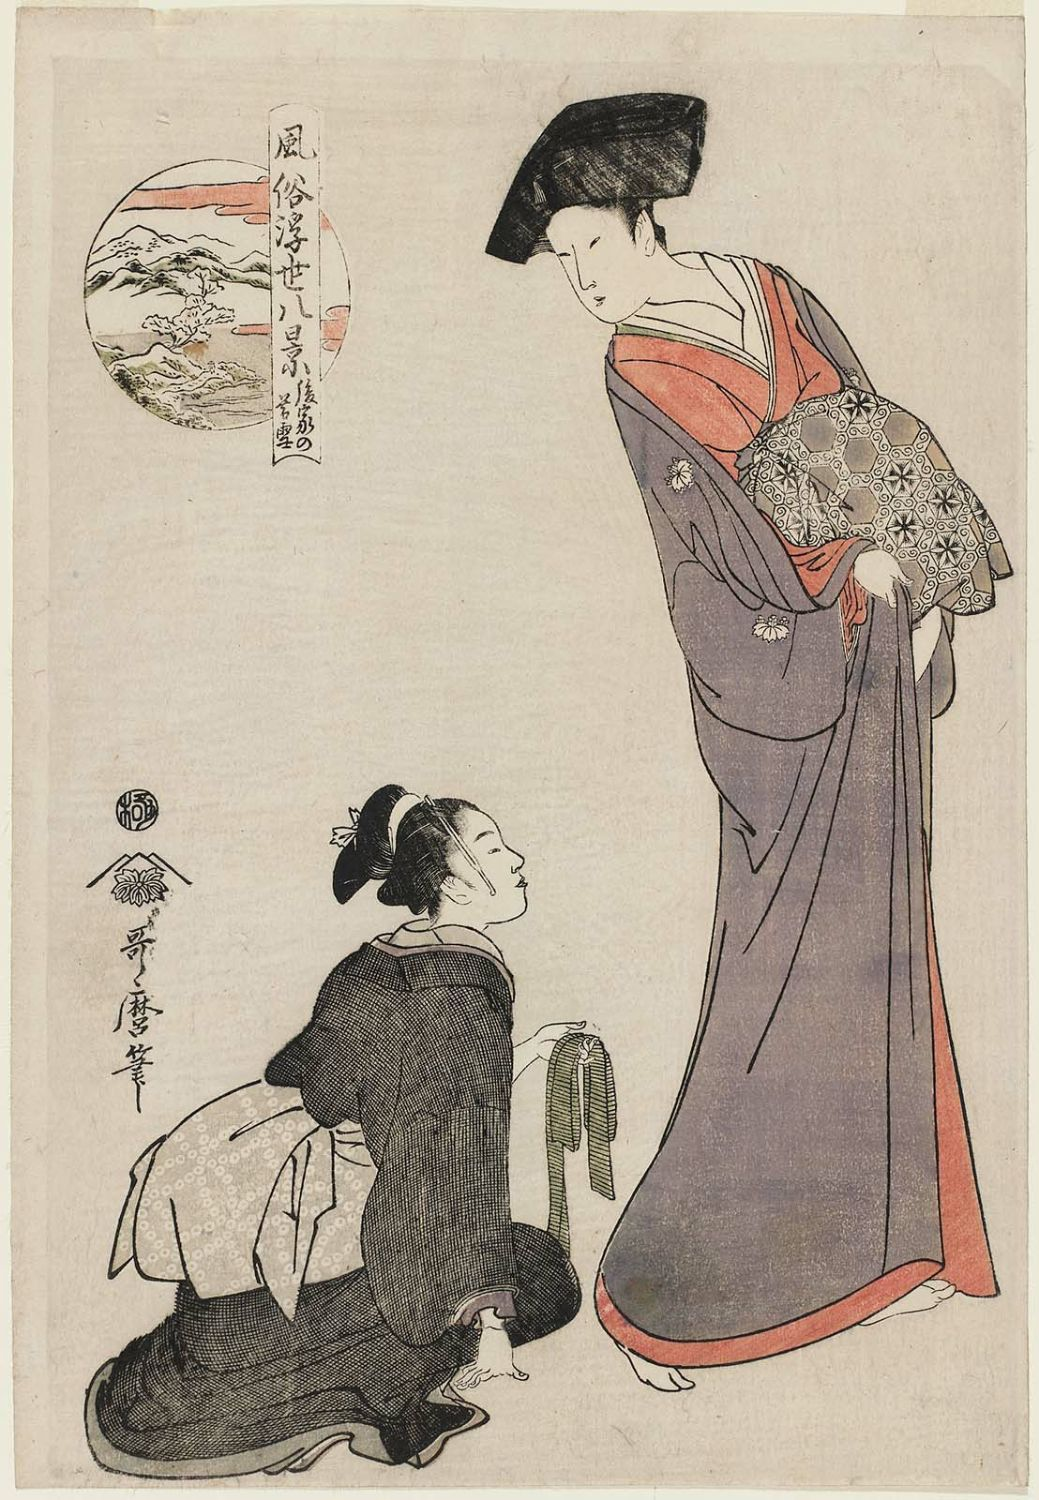 essays on kitagawa utamaro Ukiyo-e artists produced woodblock prints incorporating depictions of genre but it is also offers a visual essay in the way one kitagawa utamaro i.